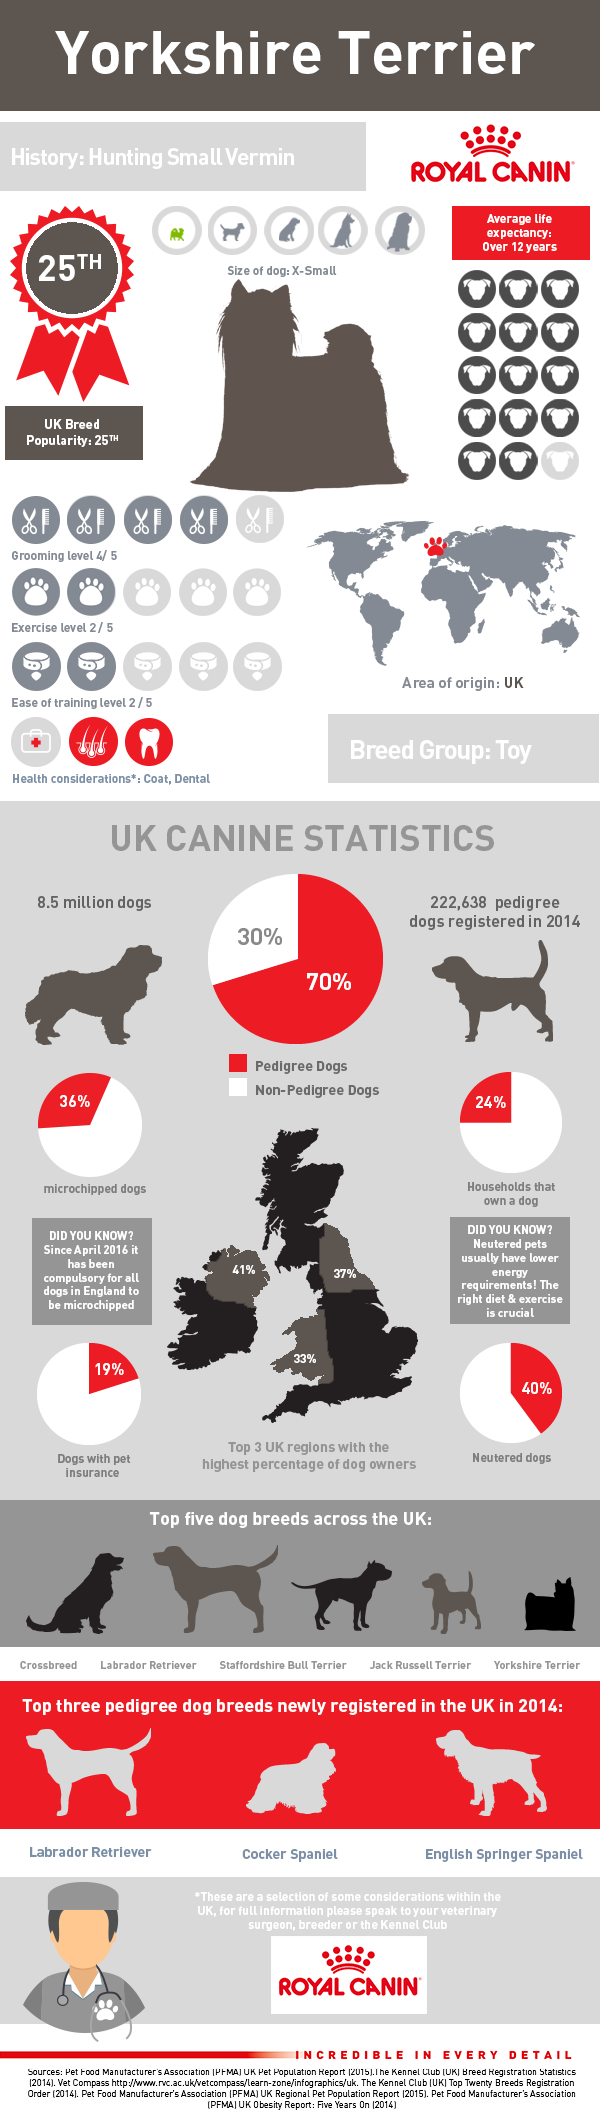 infographic-yorkshire-terrier